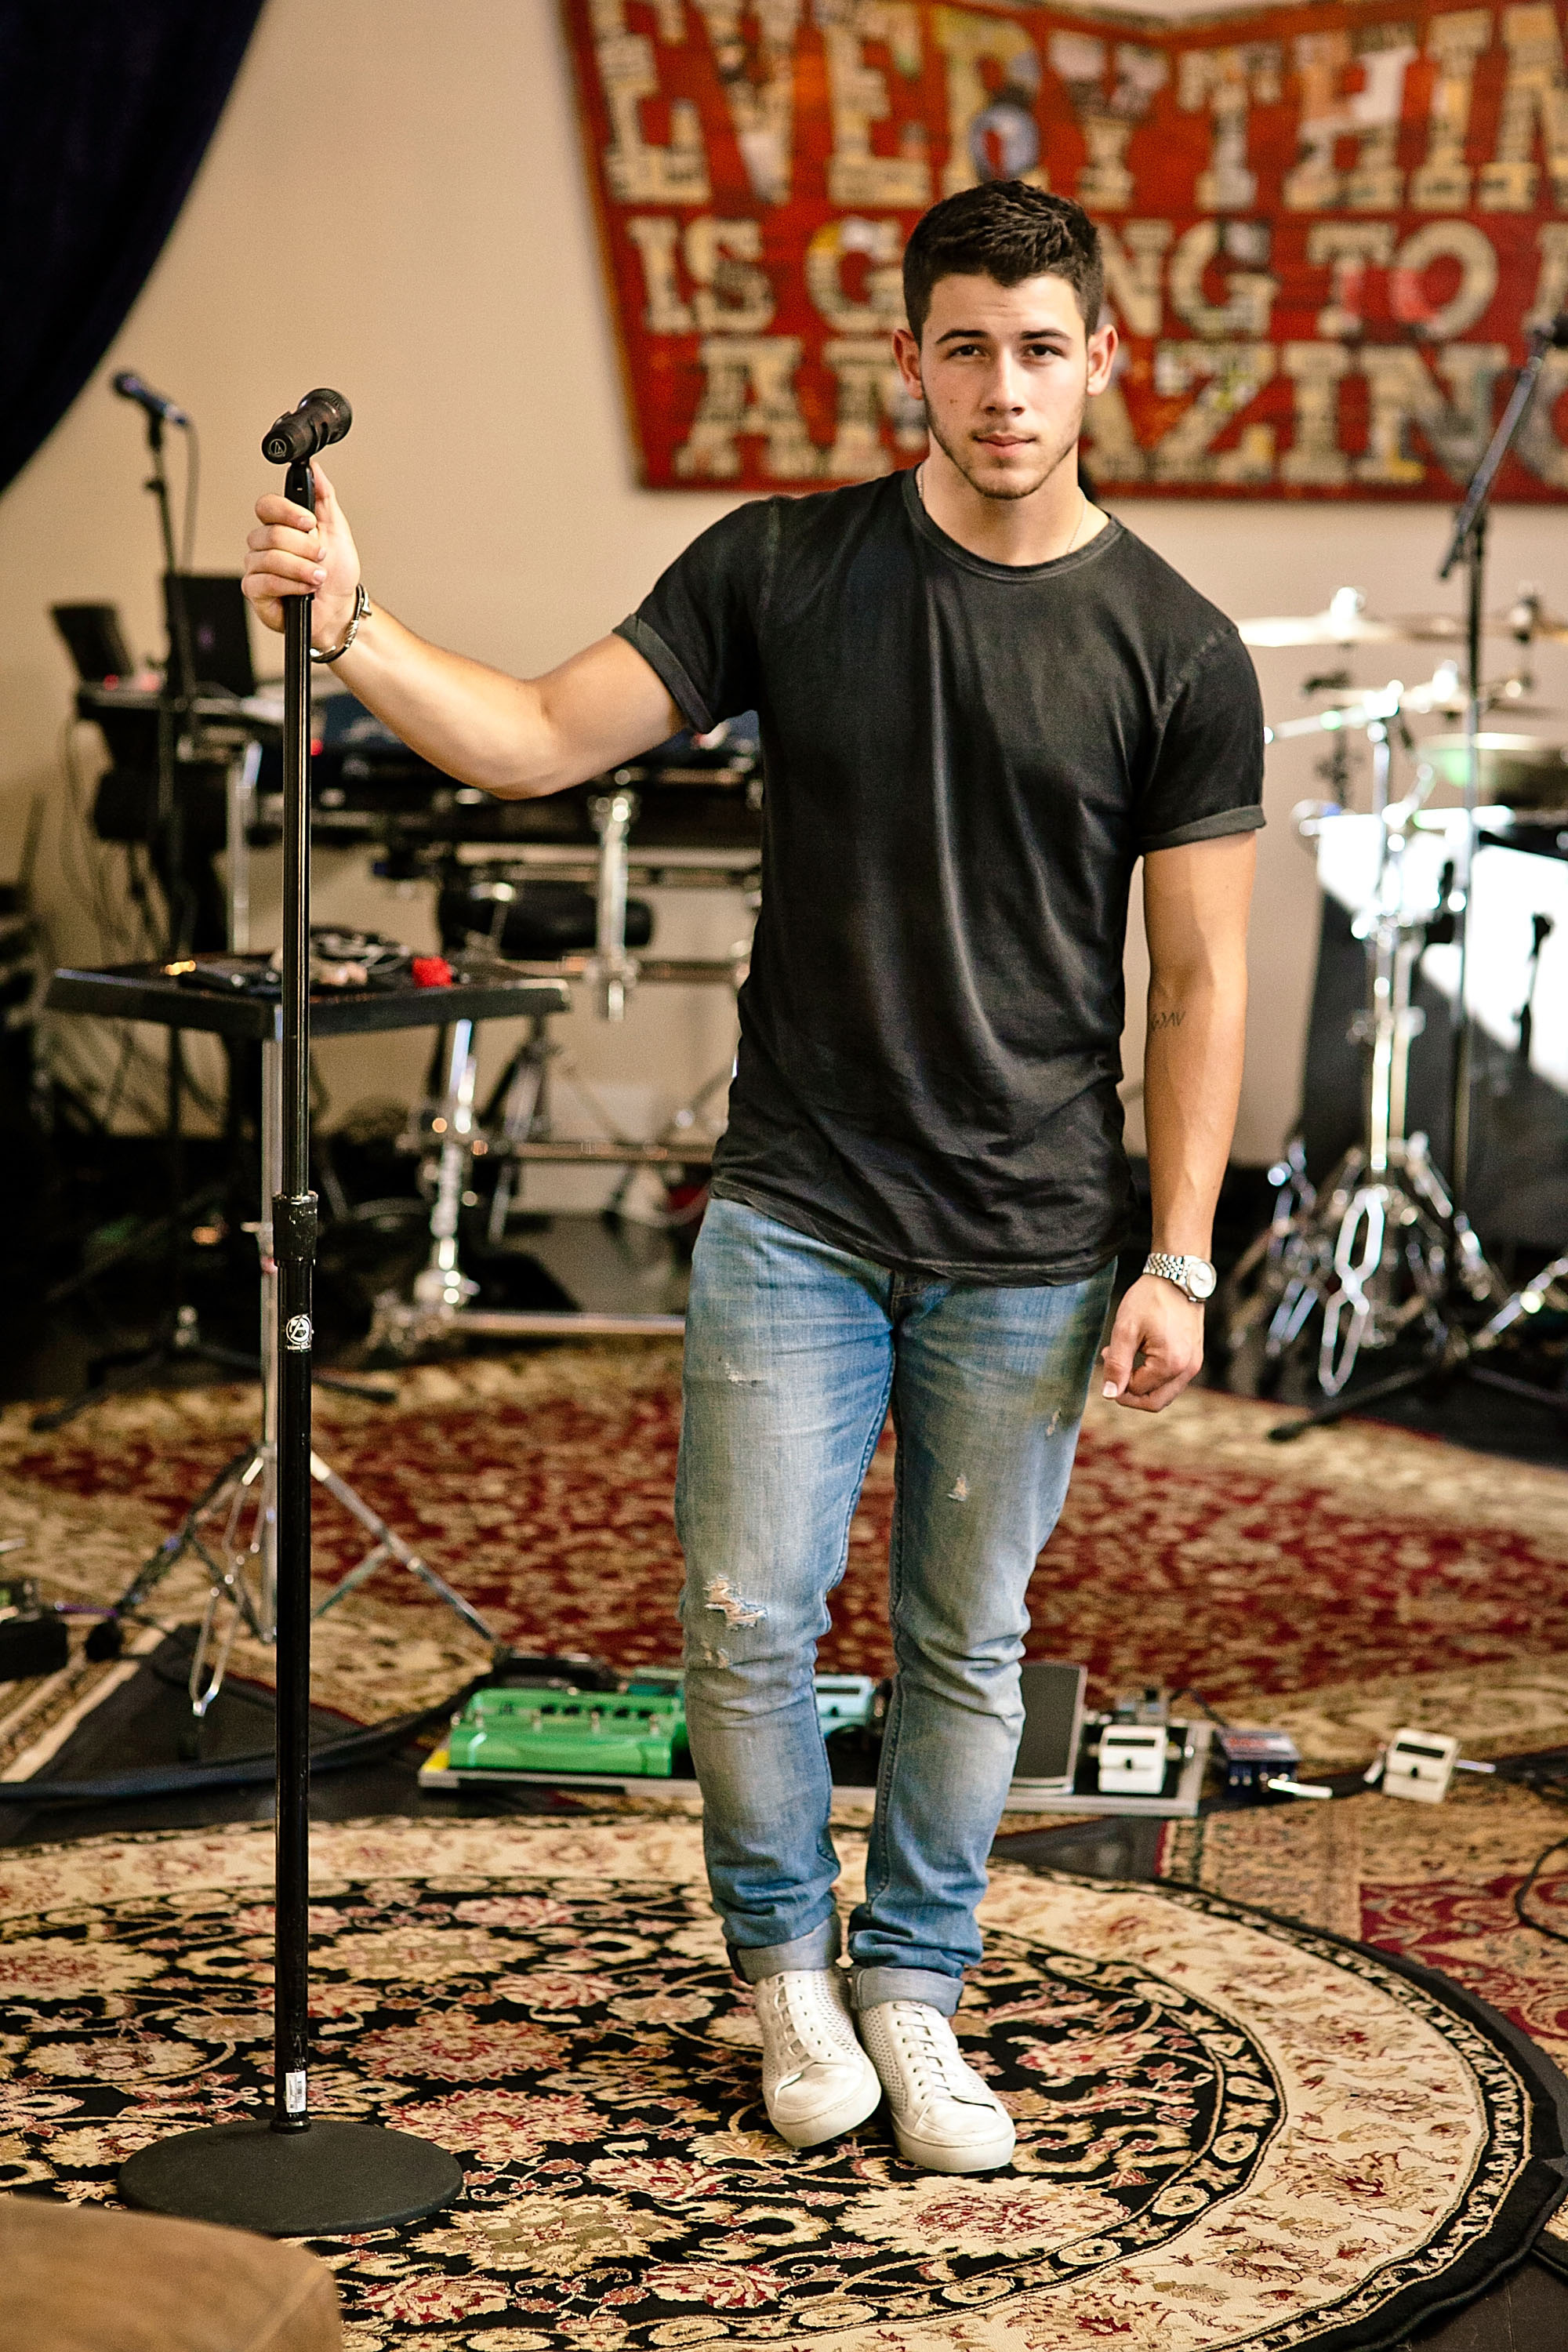 Nick Jonas rehearses in Los Angeles for his new self titled album on August 22, 2014 in West Hollywood, California.